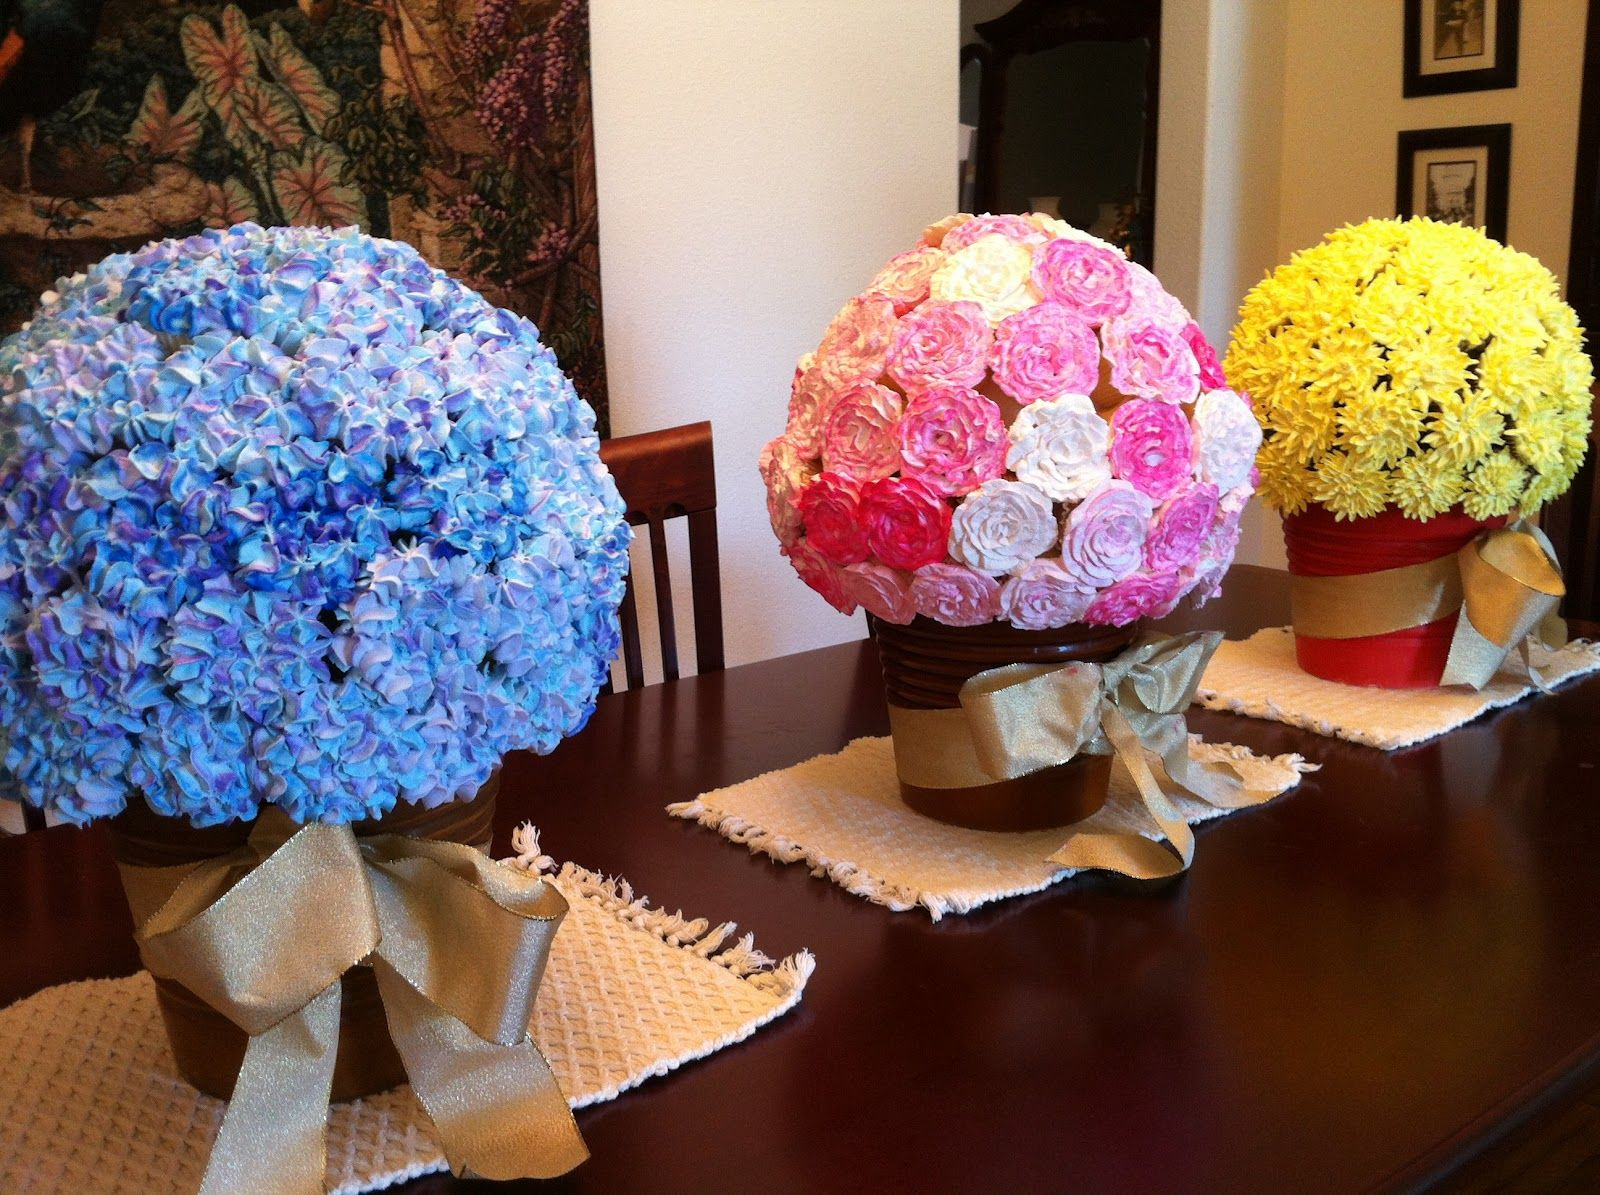 Cake ball flower pot bouquet posted by anh hoang at 208 pm cupcake flower bouquets video tutorial these are real cupcakes covering a foam ball izmirmasajfo Image collections